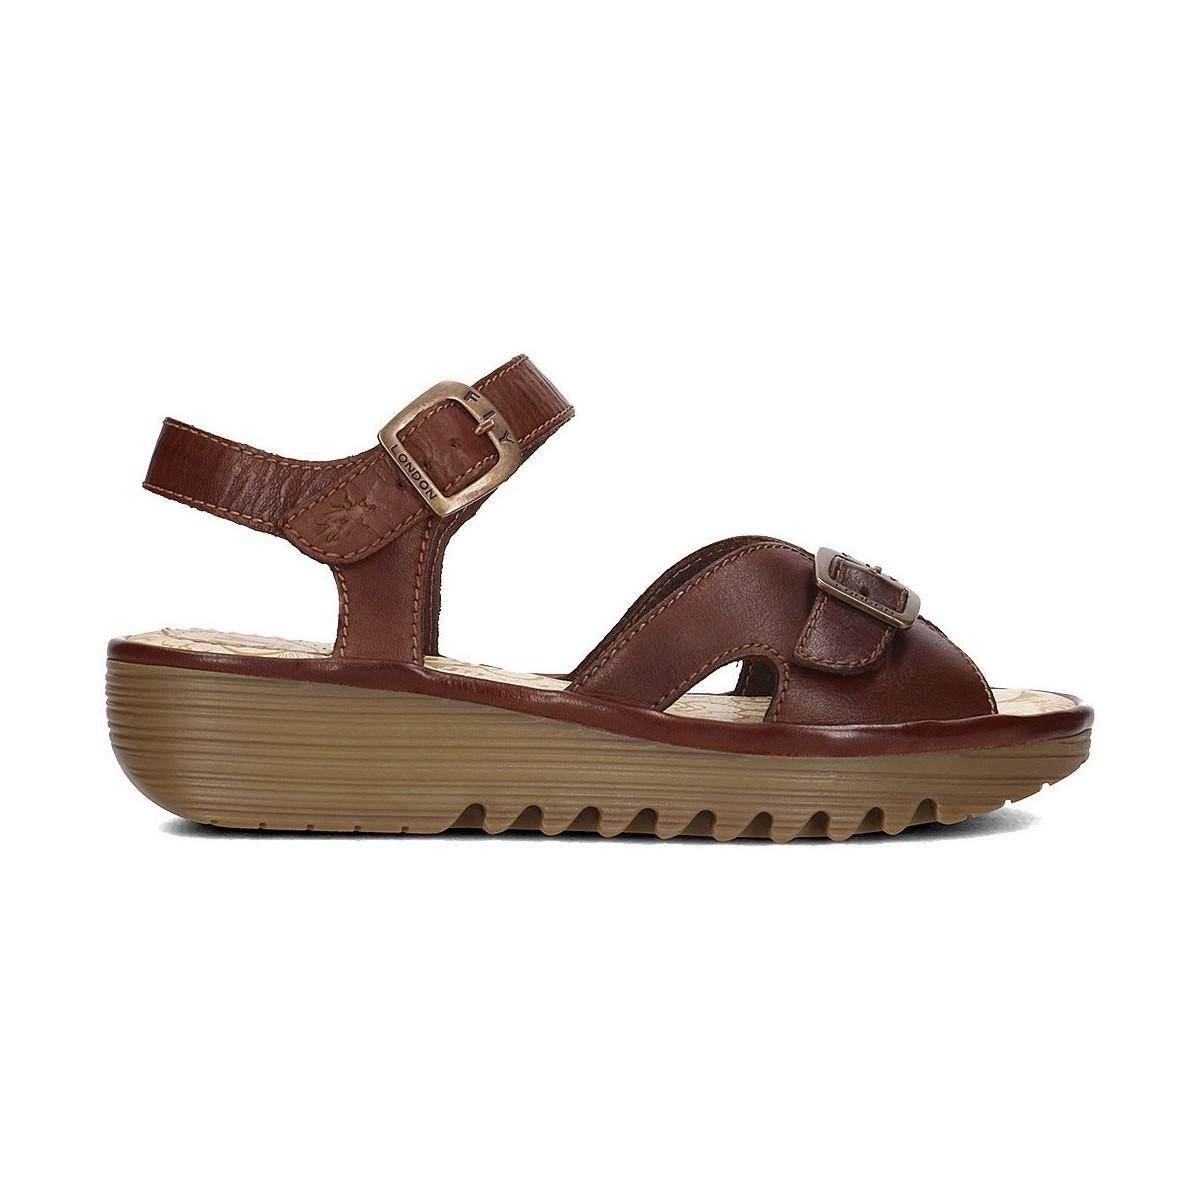 Fly London P500847001 women's Sandals in Discounts Online Store Real kGg4Qxc